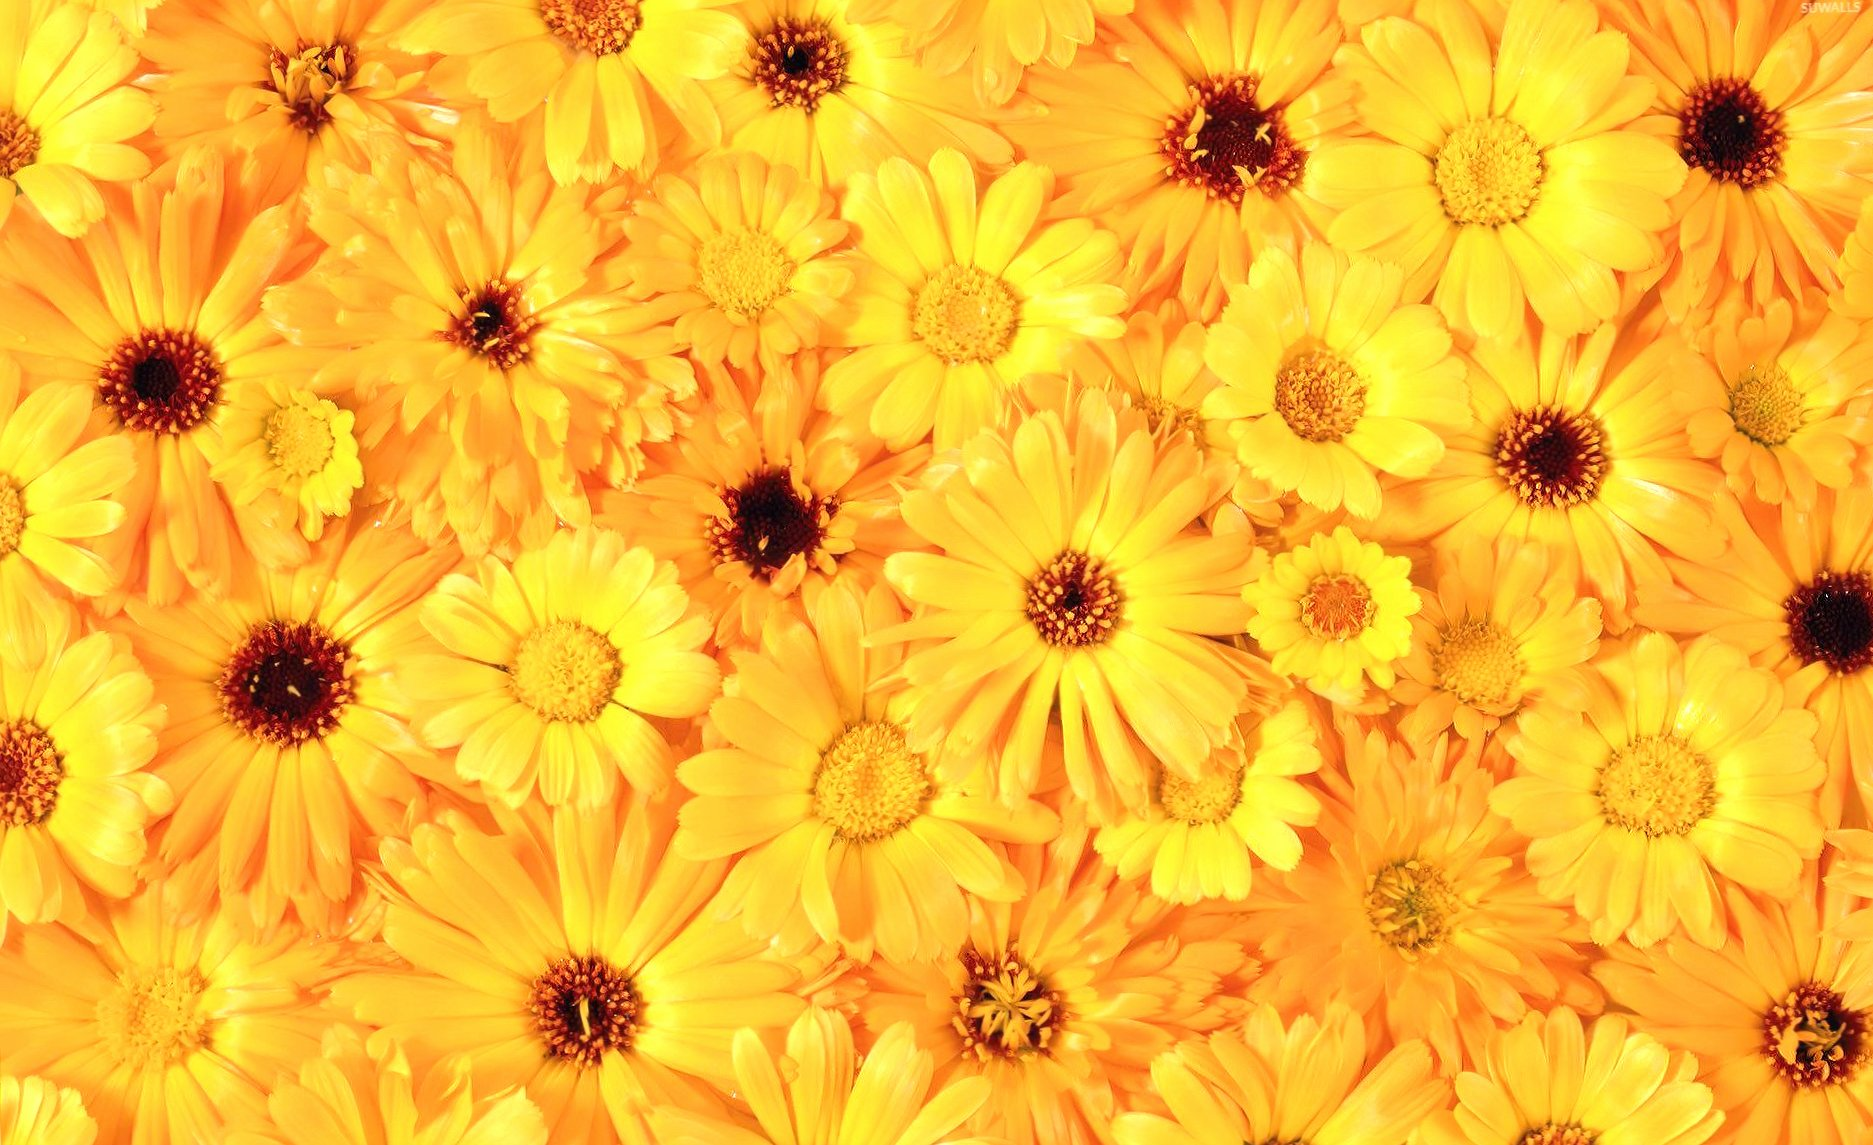 Yellow daisies wallpapers HD quality